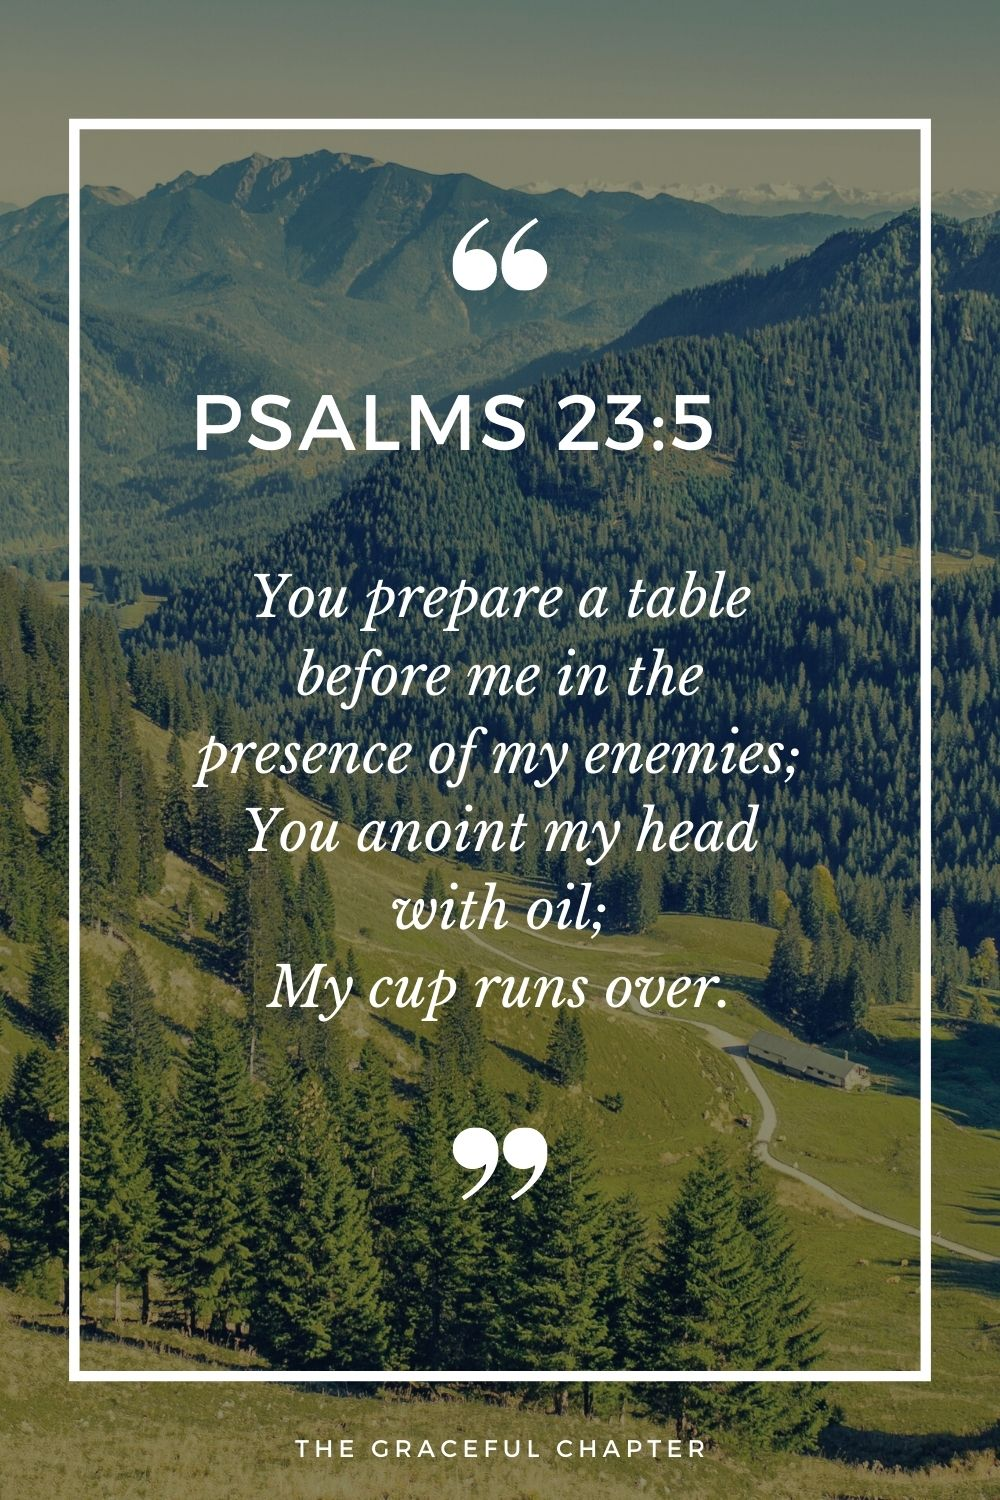 You prepare a table before me in the presence of my enemies; You anoint my head with oil; My cup runs over. Psalms 23:5